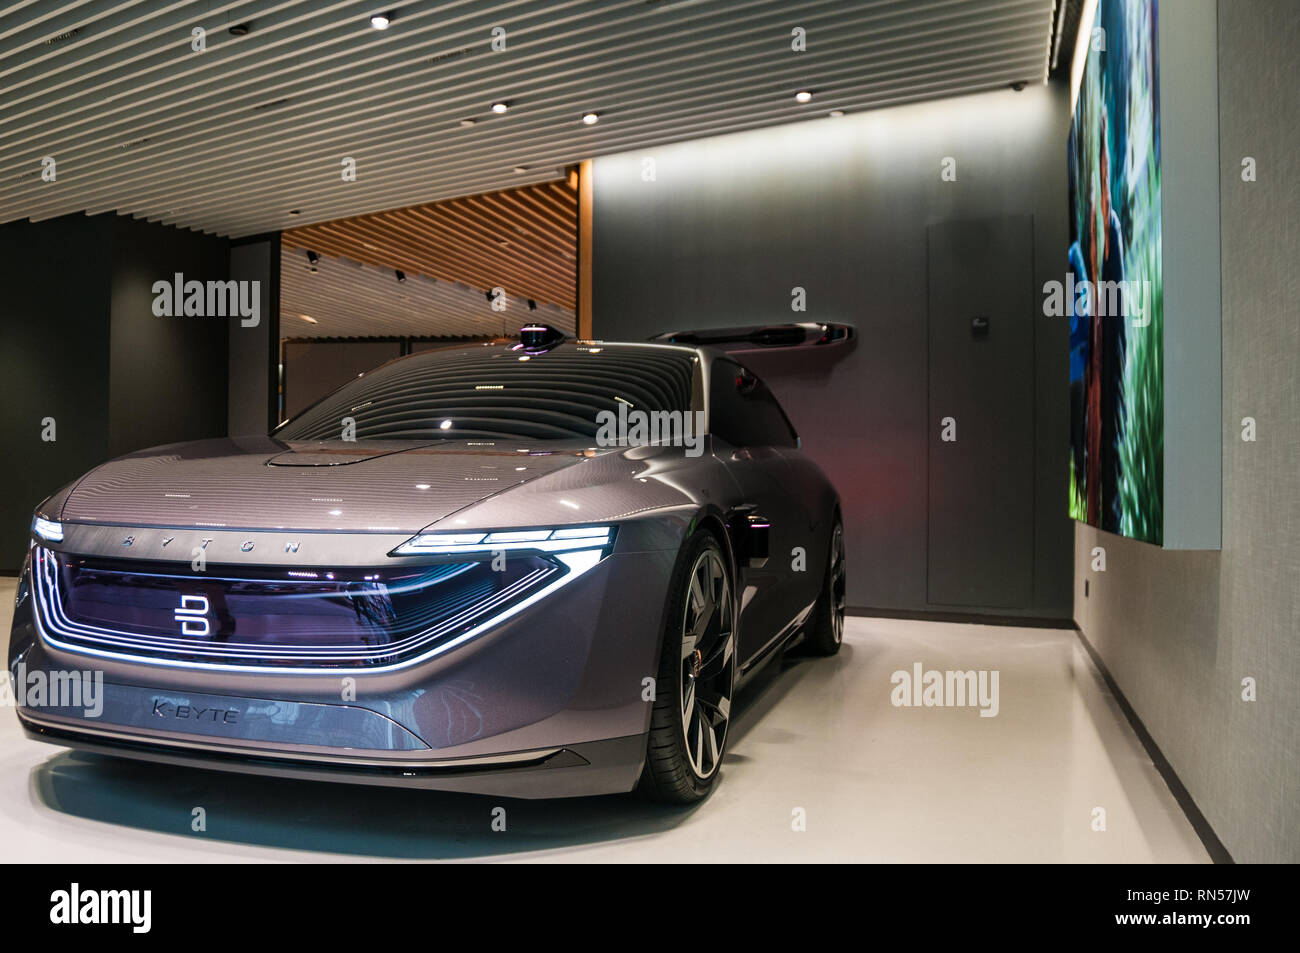 The Byton K-Byte Concept on display in the very first Byton Place concept store in Shanghai, China. - Stock Image